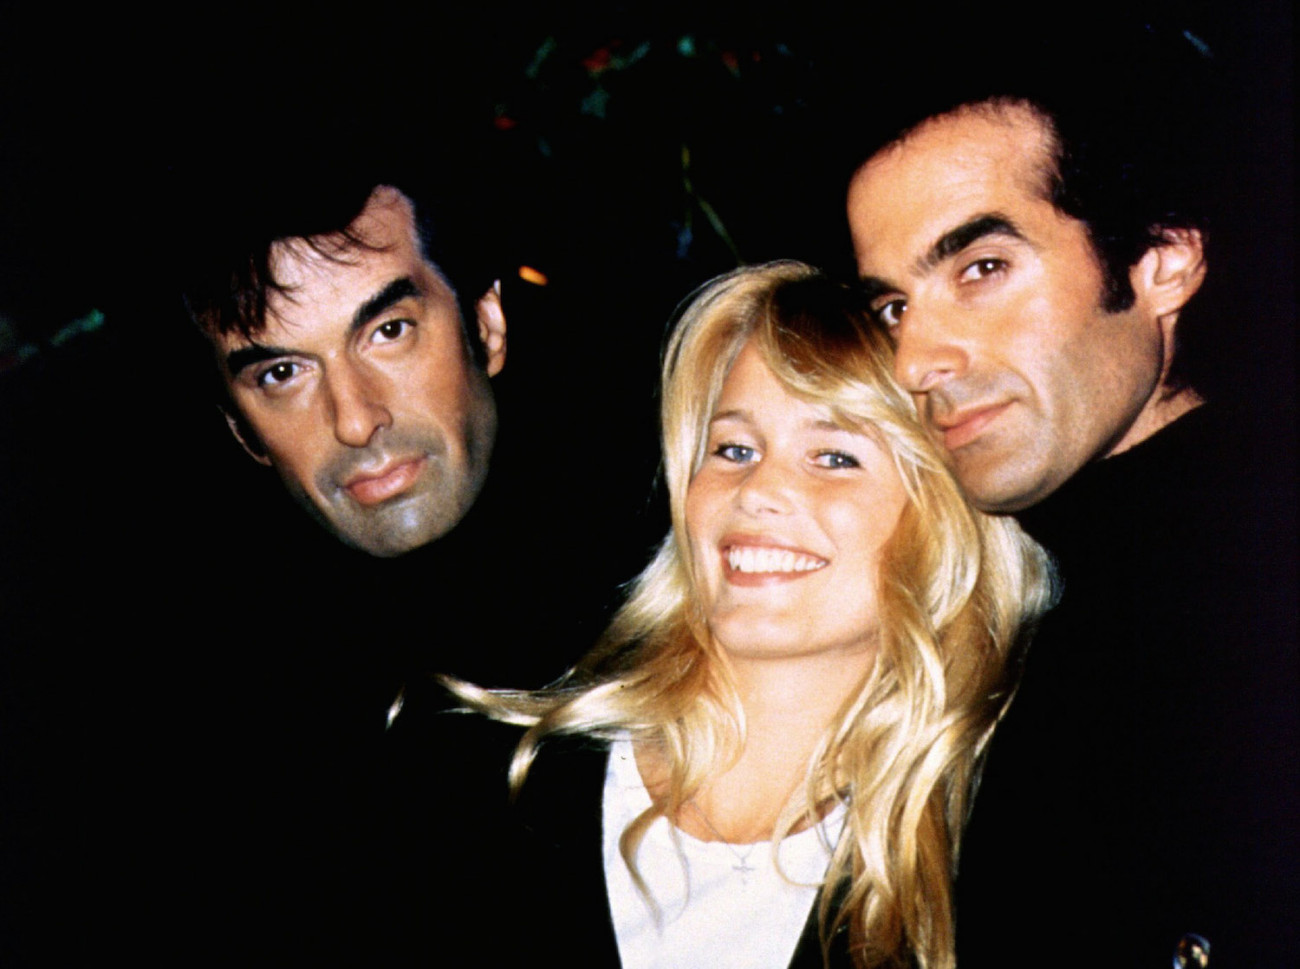 The David Copperfield (right) and his wife Claudia Schiffer admire his lifelike wax portrait (left), part of the $20 million Madame Tussaud's Las Vegas attraction opening at The Venetian March 9, 1999. Madame Tussaud's Las Vegas is the US debut of The Tussauds Group Ltd., Europe's leading attraction developer and operator. (Photo by courtesy of Madame Tussaud )